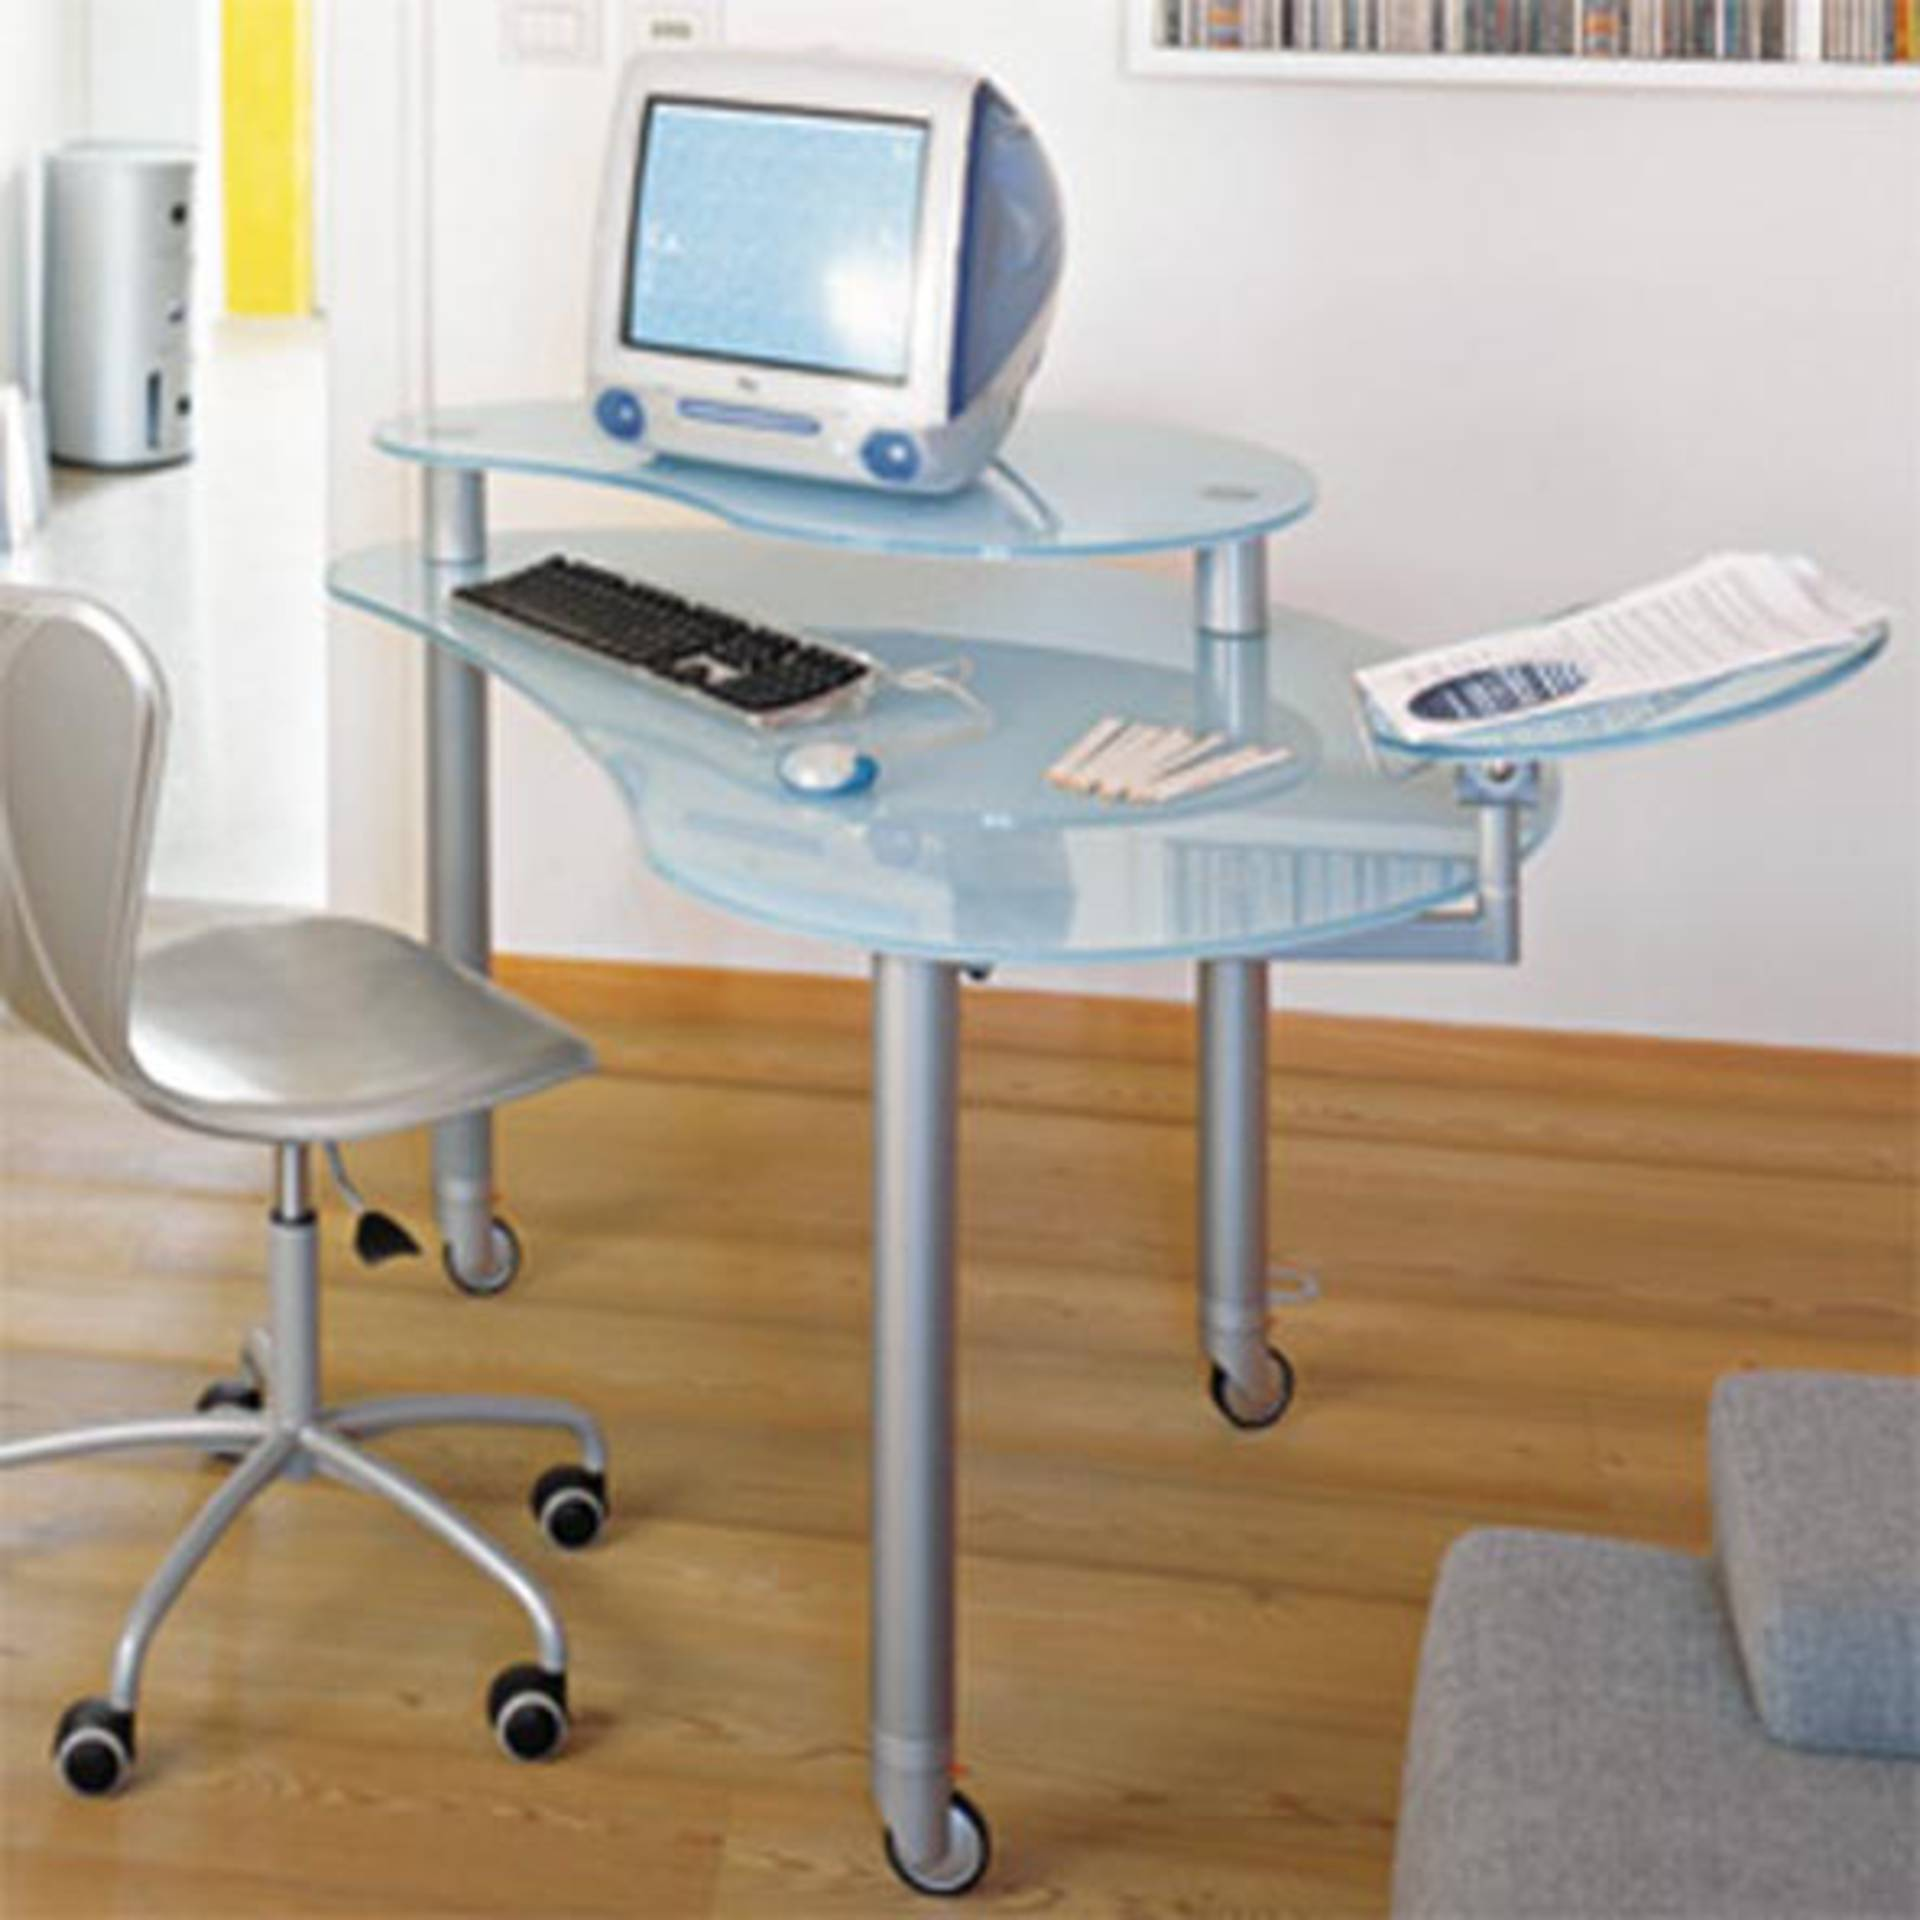 Contemporary Home Office Computer Furniture by Cattelan  Contemporary Home Office Computer Furniture by Cattelan   Home Reviews. Contemporary Home Office Computer Desk. Home Design Ideas